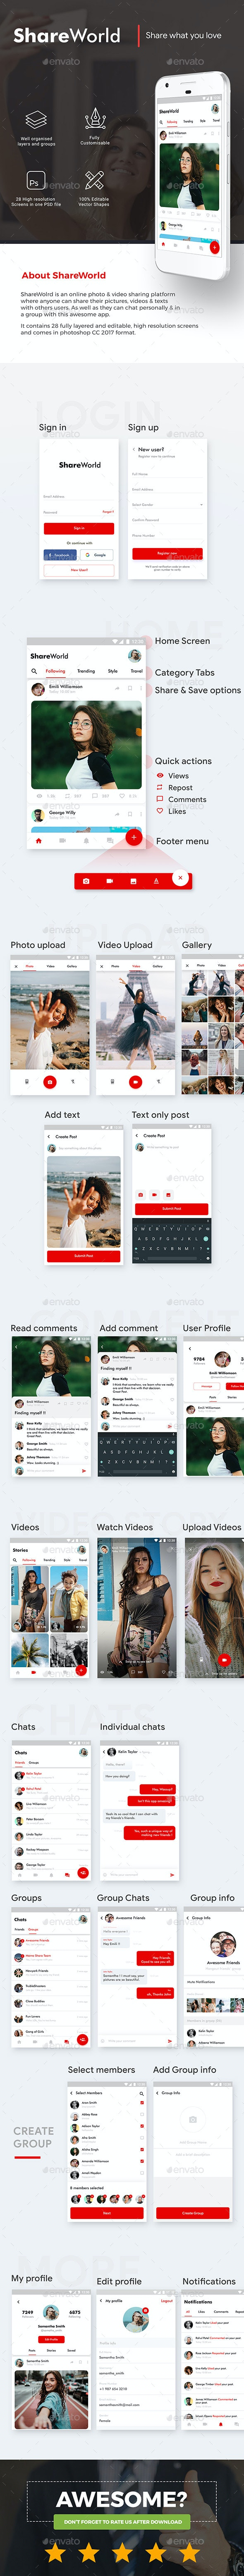 Social App with Video Story, Chats & Group Chats App UI | Share World - User Interfaces Web Elements